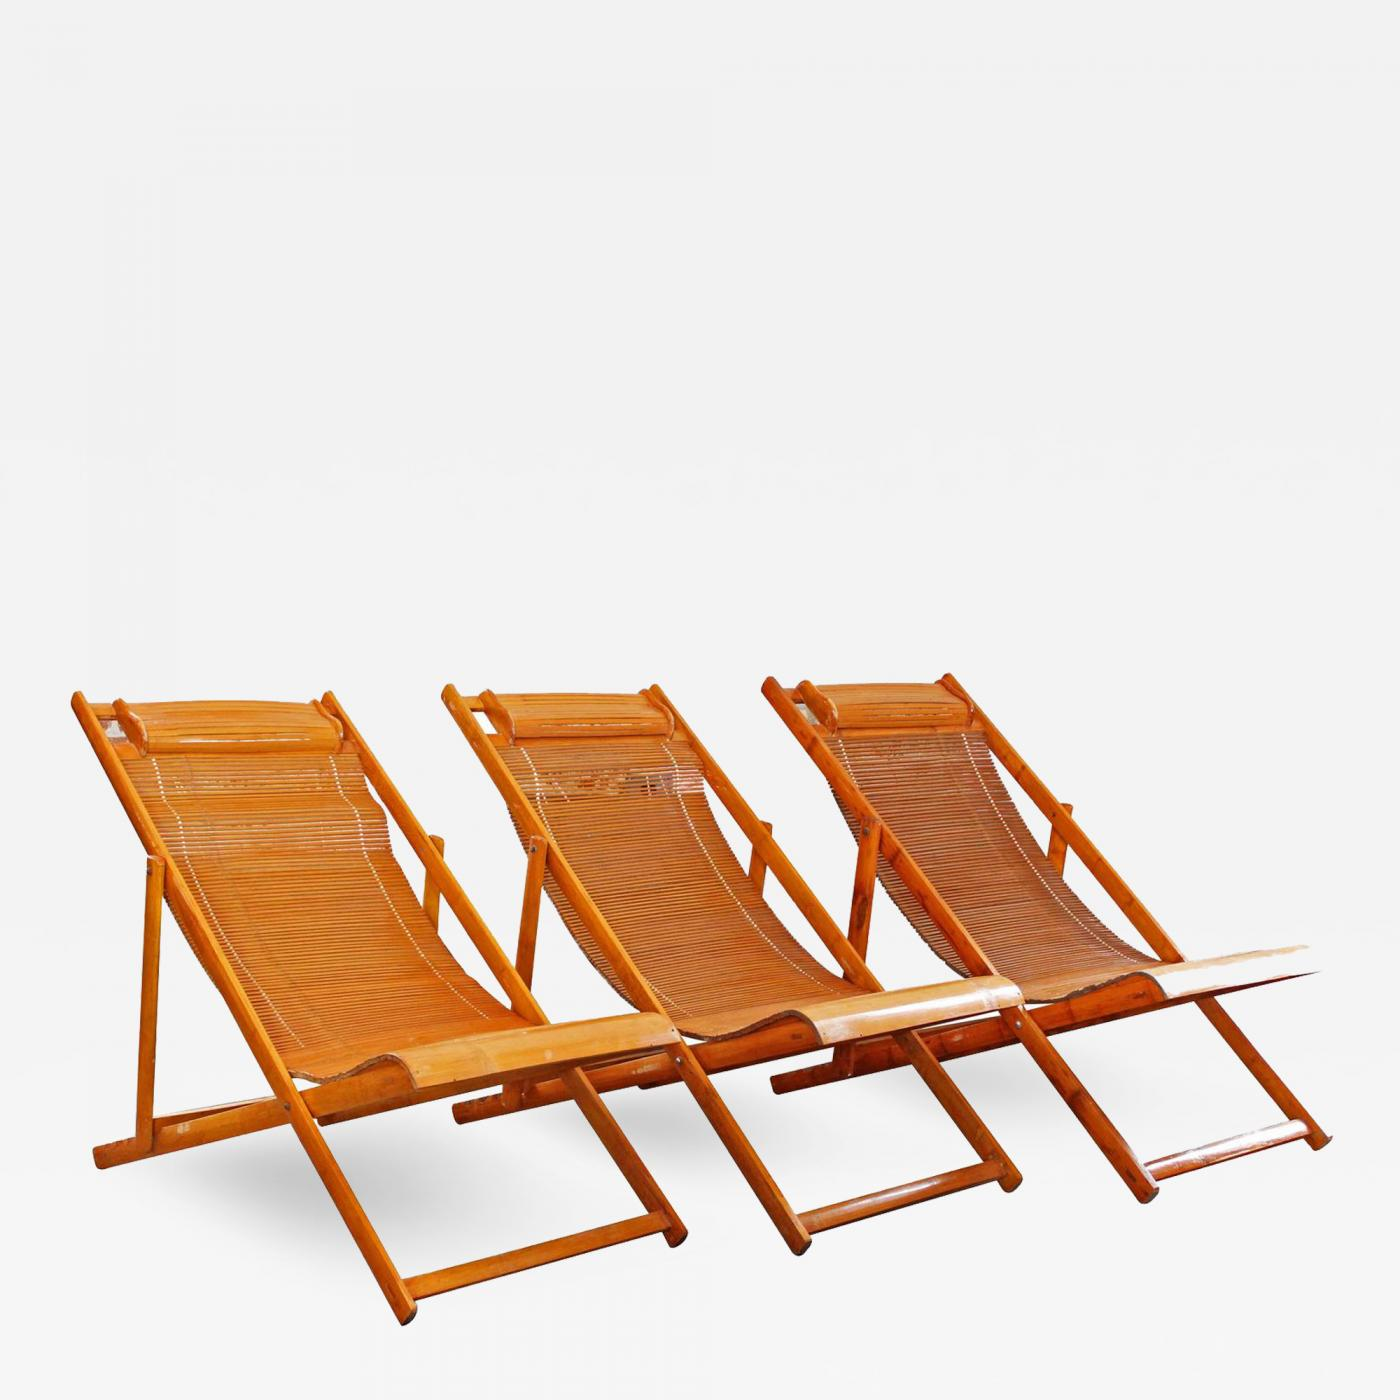 Superieur Listings / Furniture / Seating / Lounge Chairs